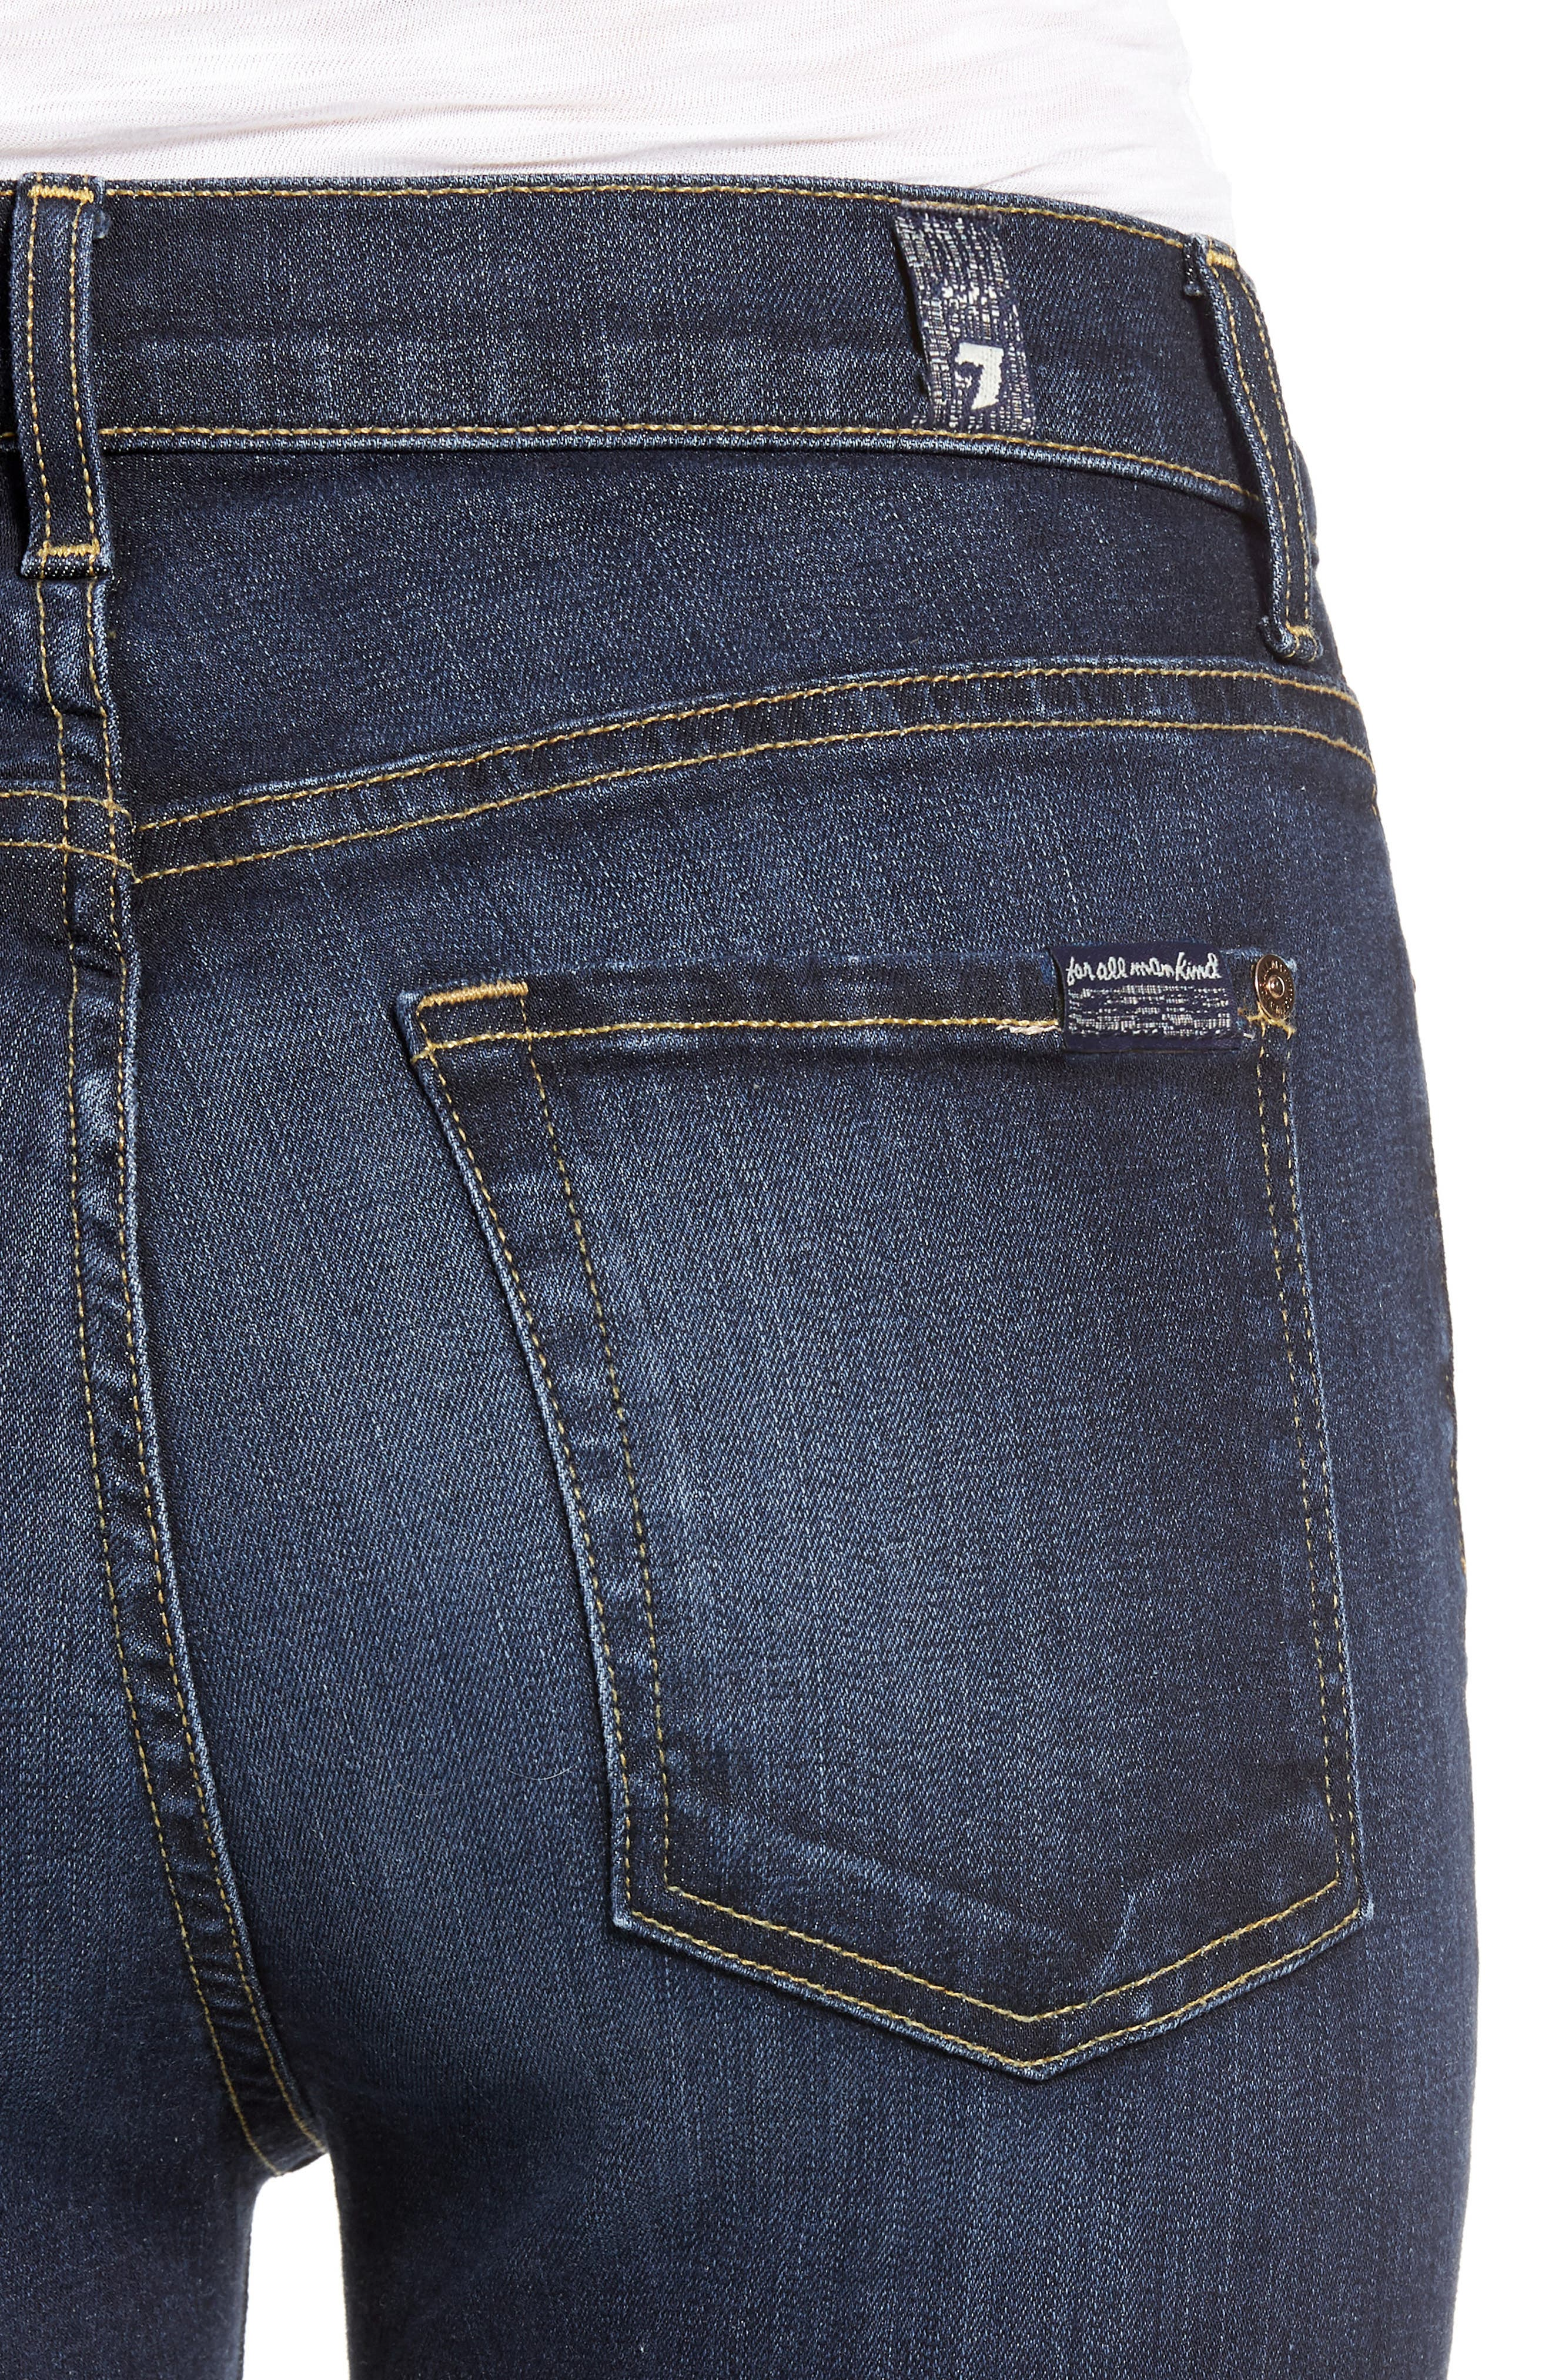 7 FOR ALL MANKIND<SUP>®</SUP>, The High Waist Skinny Jeans, Alternate thumbnail 5, color, AUTHENTIC FATE